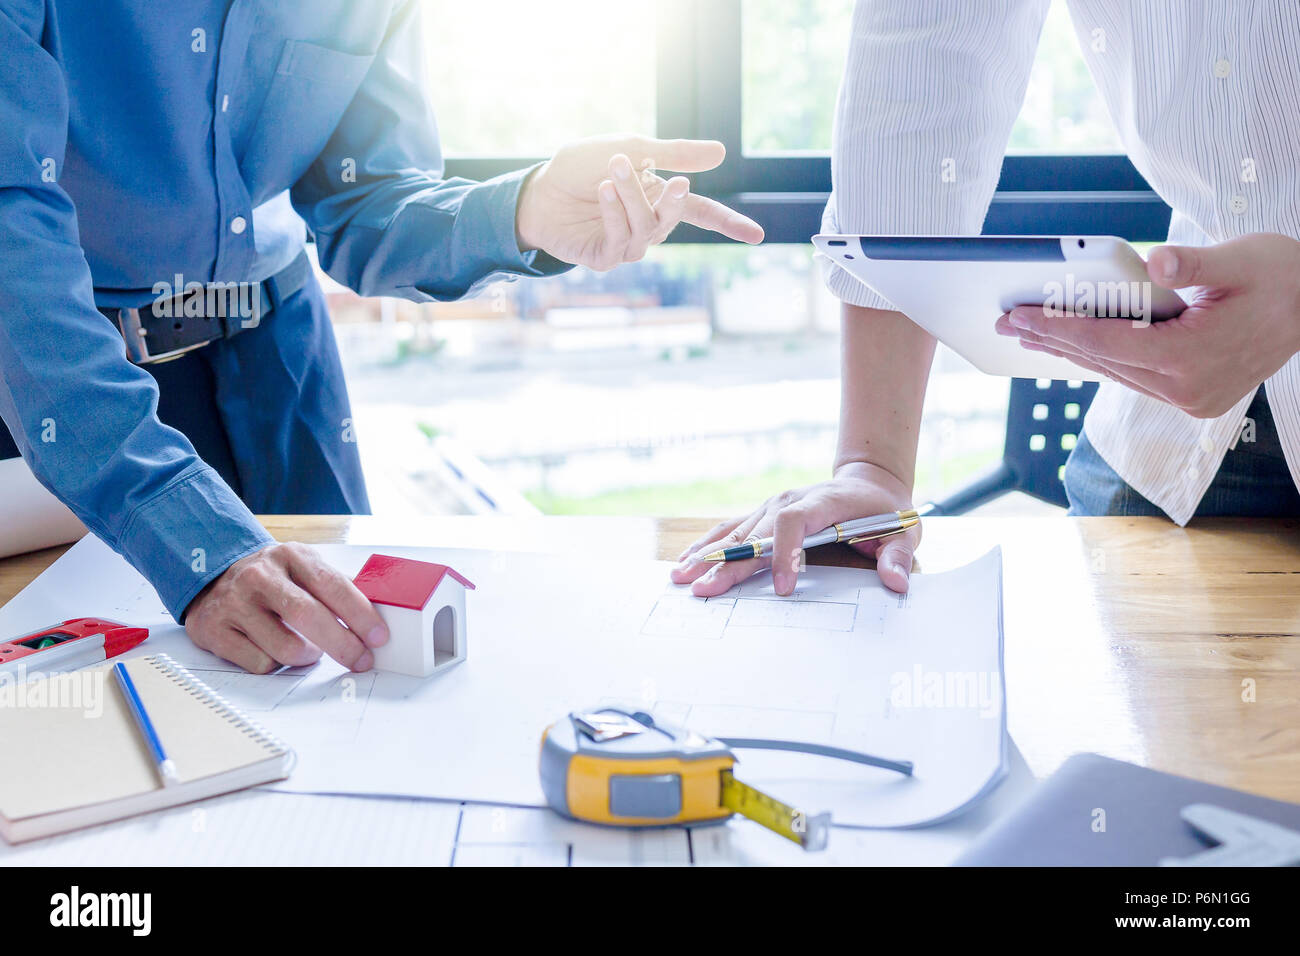 Team of engineers working together in a architect office